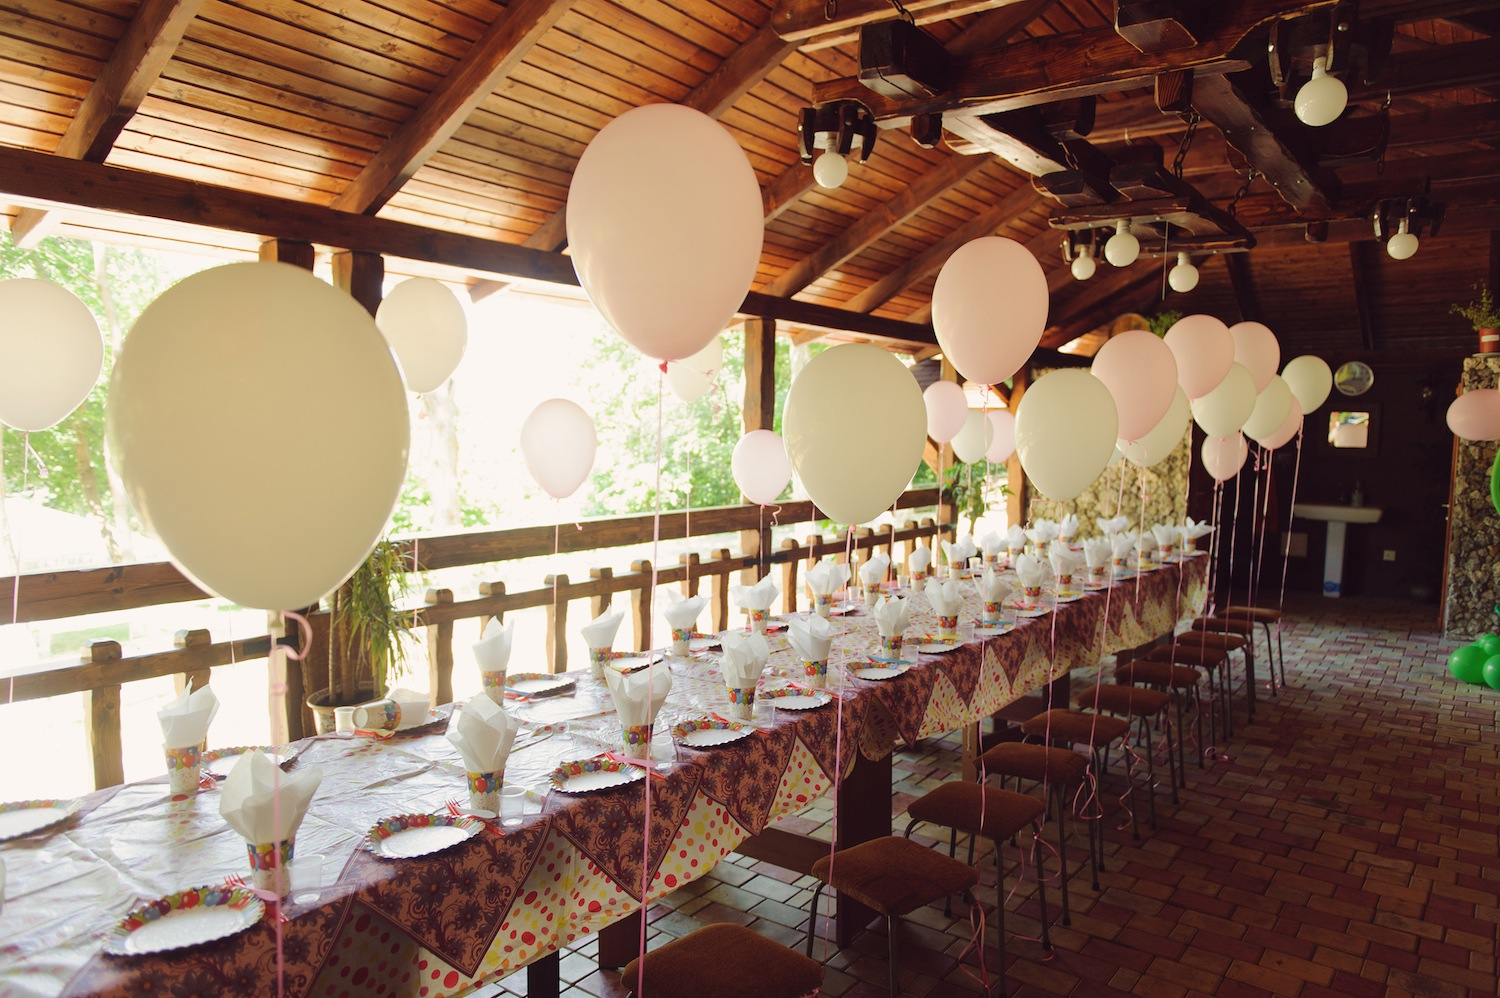 Tips for Planning an Unforgettable Milestone Birthday Party